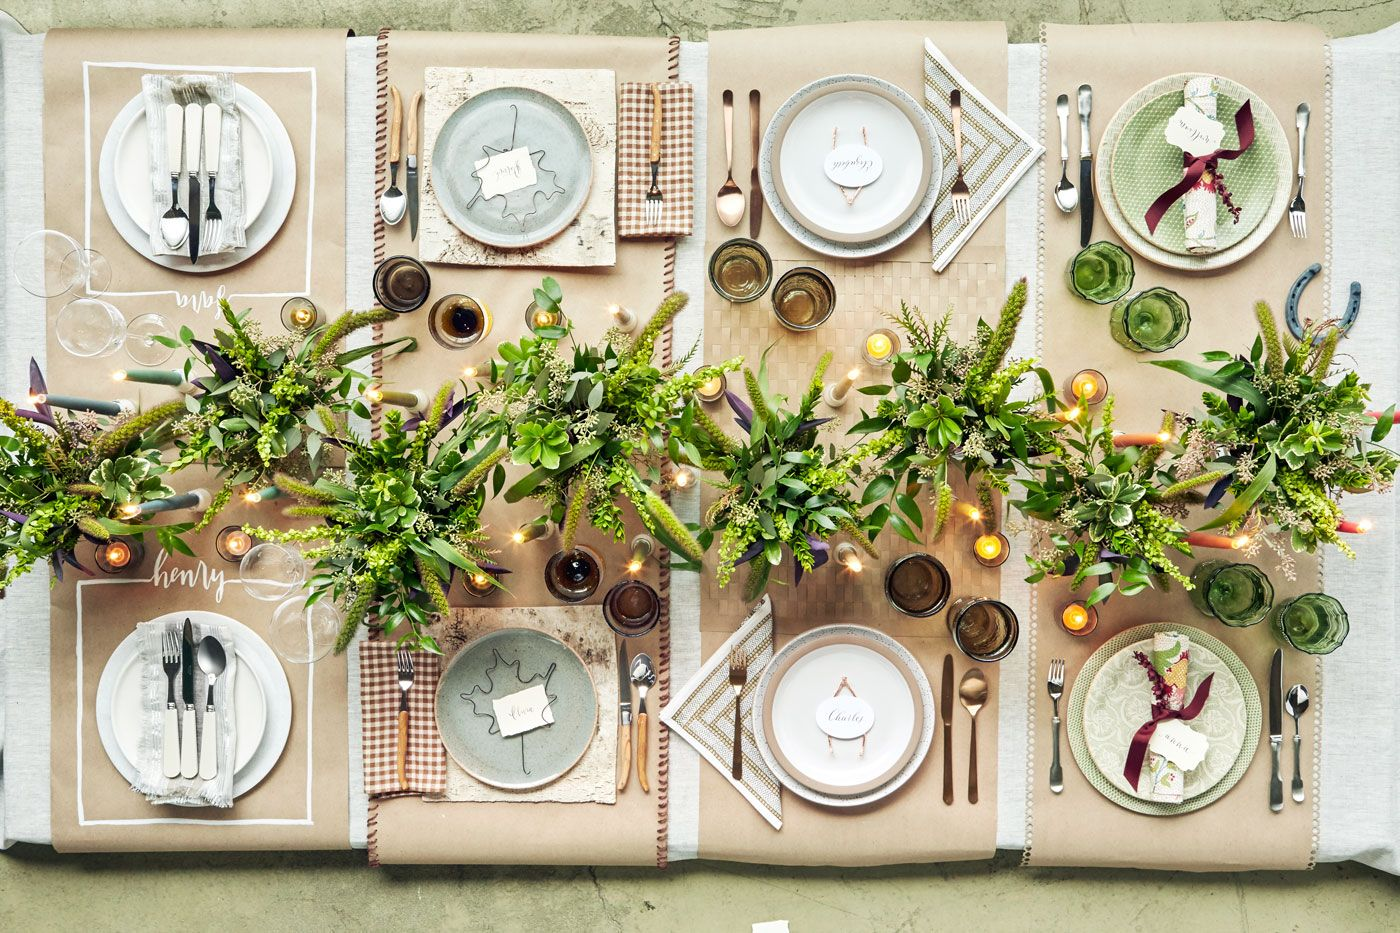 55 DIY Thanksgiving Table Settings to Wow All Your Holiday Guests